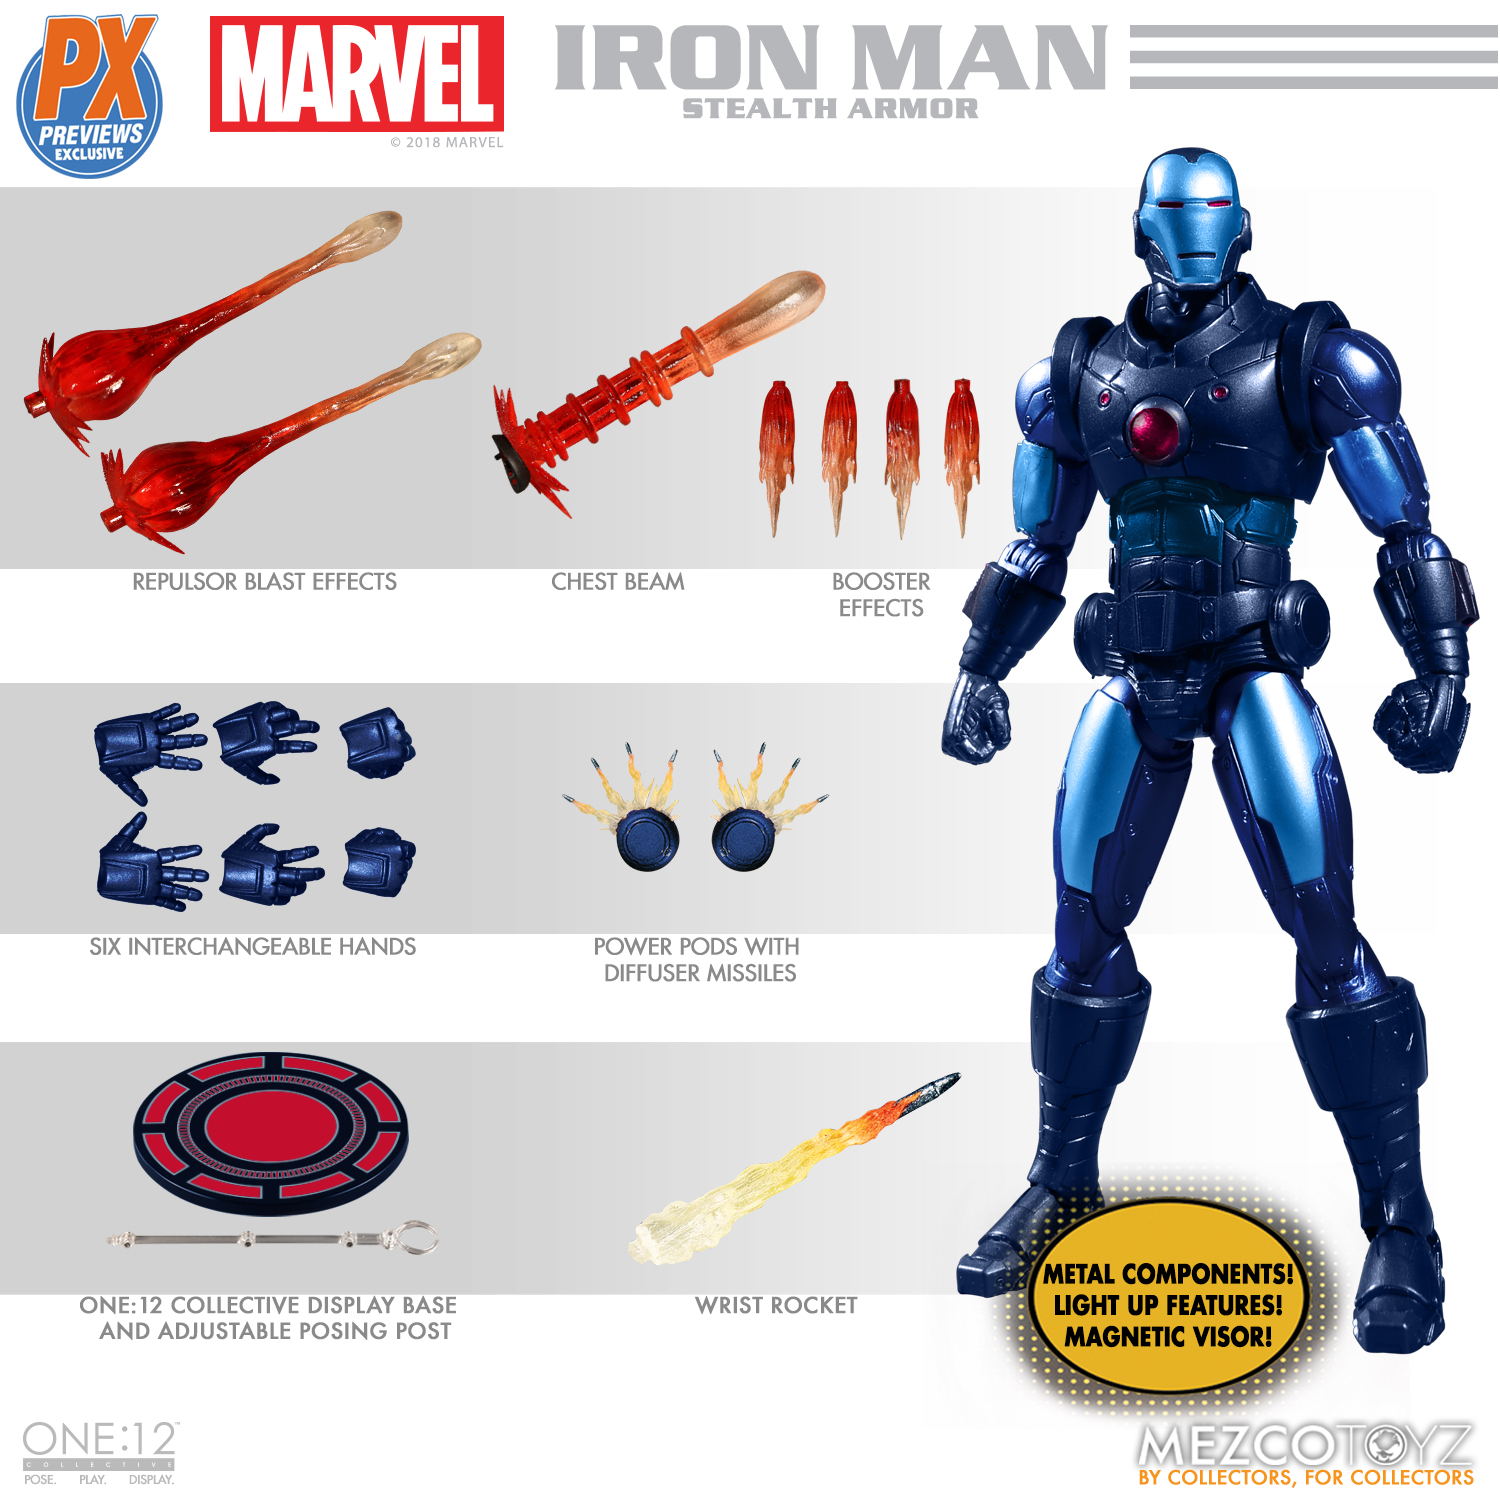 ONE-12 COLLECTIVE MARVEL PX IRON MAN STEALTH ARMOR AF